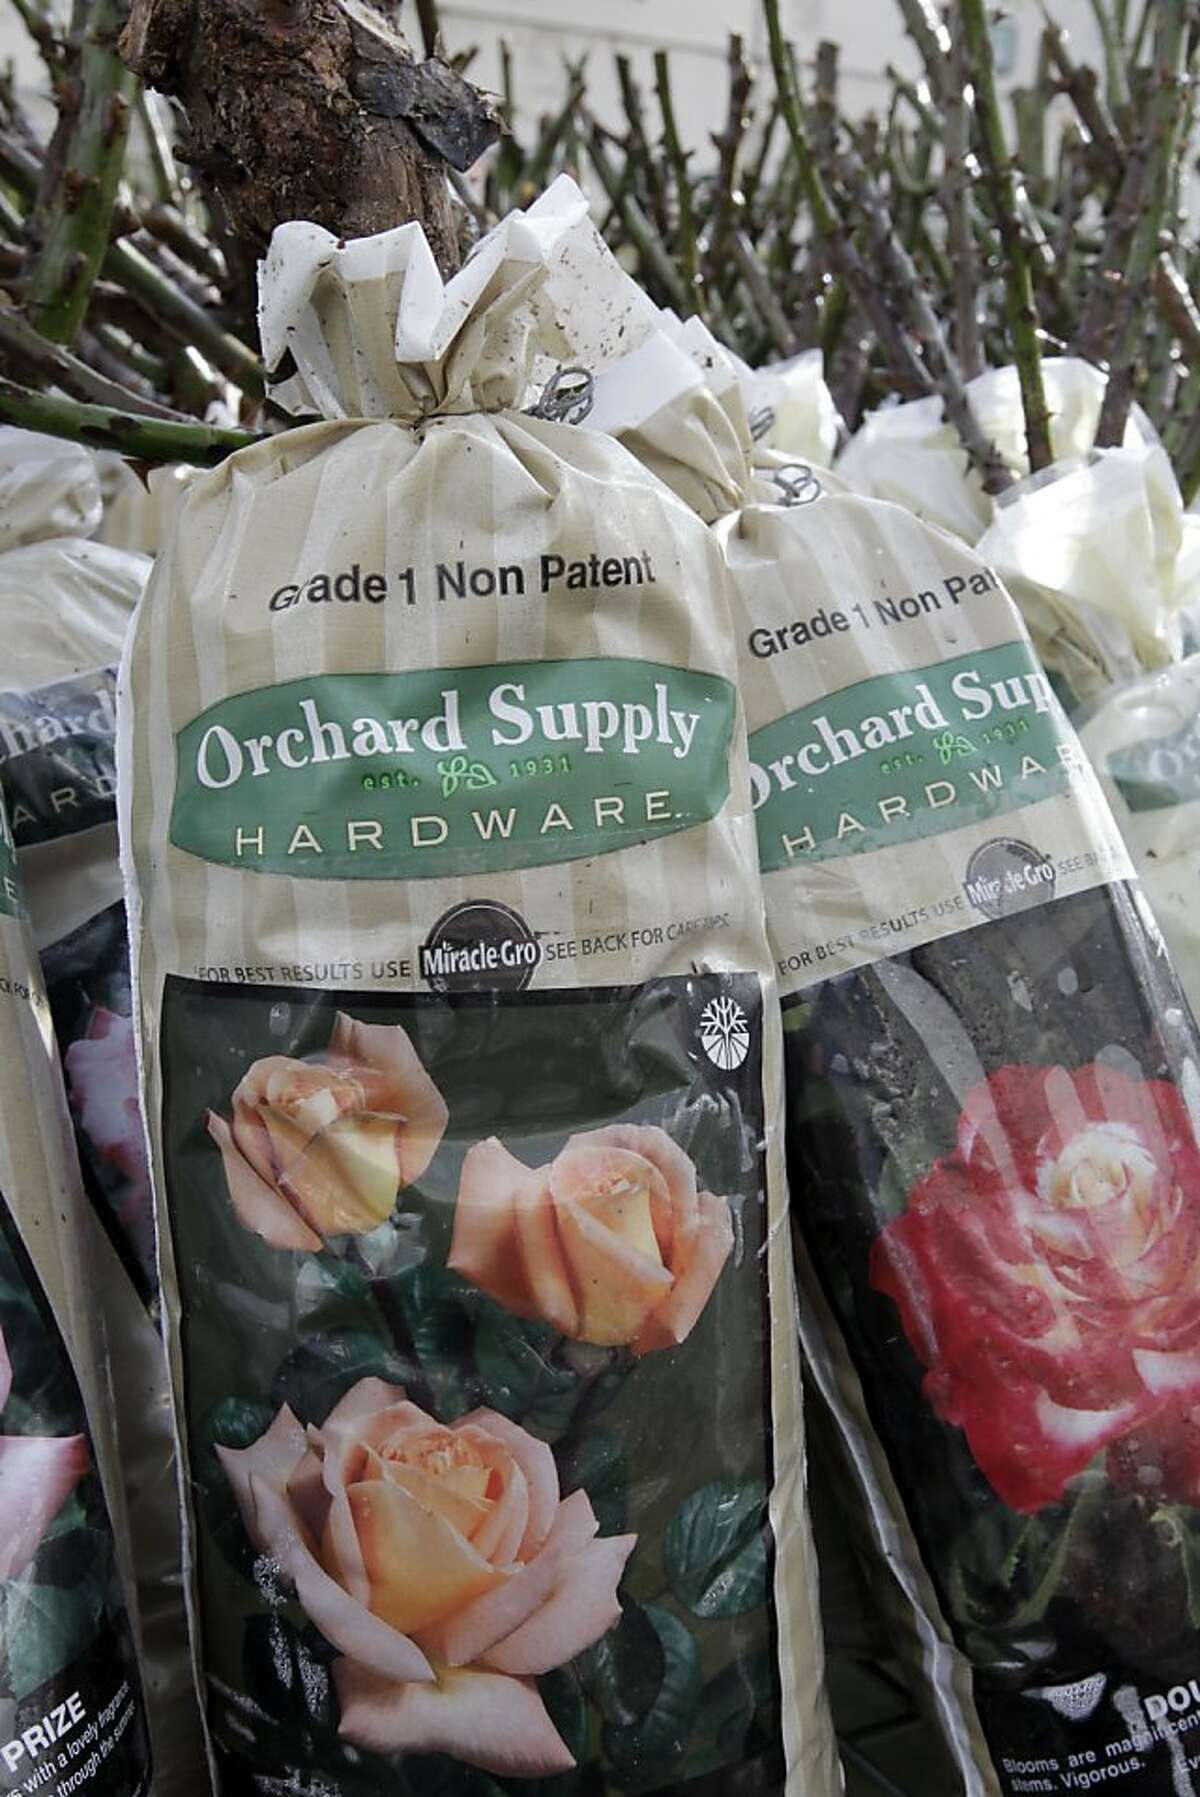 Rose plants on display for sale at Orchard Supply Hardware store in Mountain View, Calif., Tuesday, Jan. 3, 2012.